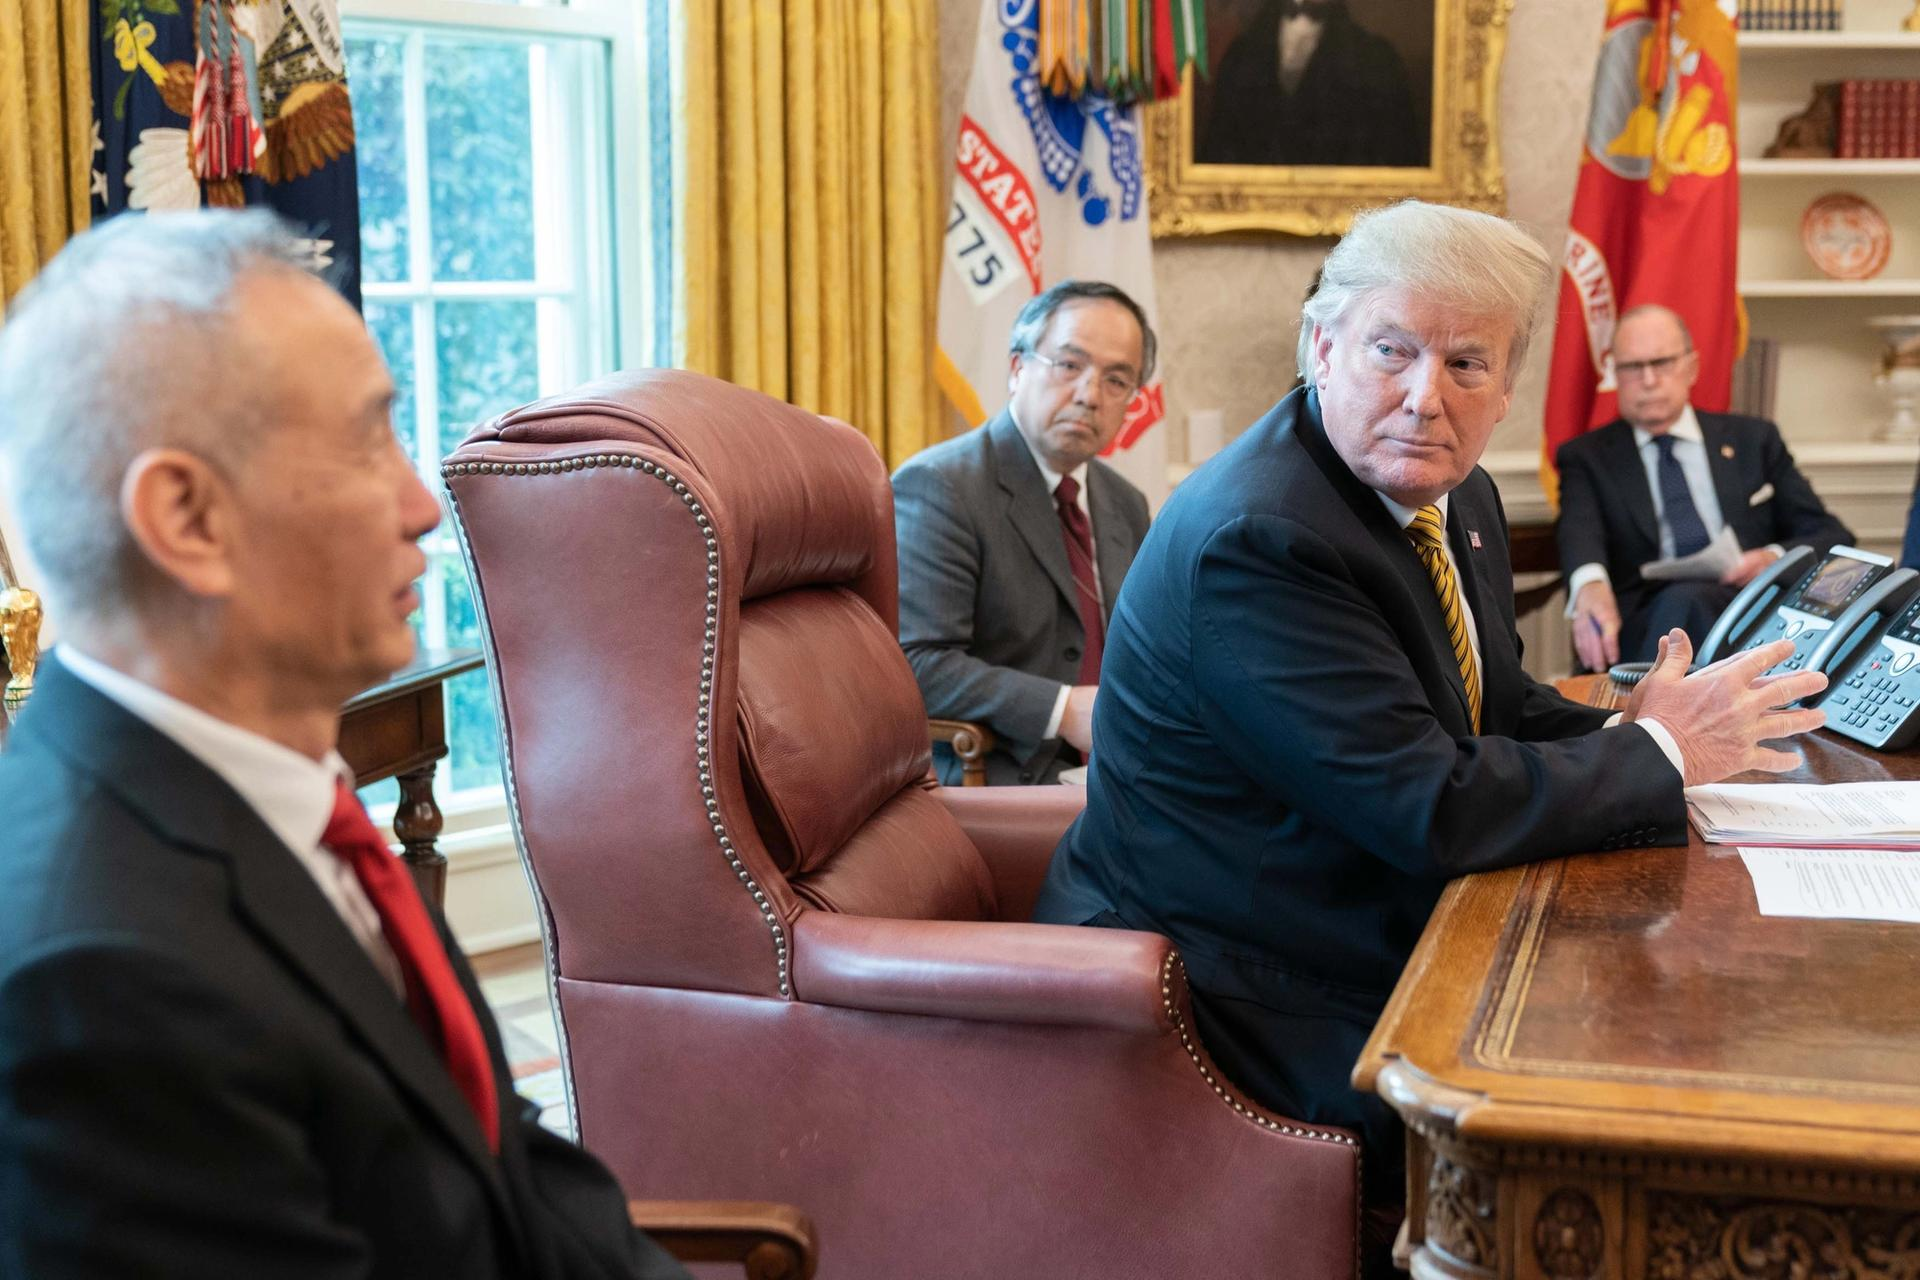 President Trump meets with the Chinese Vice Premier Liu He at the White House following continued US–China trade talks earlier this year Courtesy of the White House. Photo by Shealah Craighead